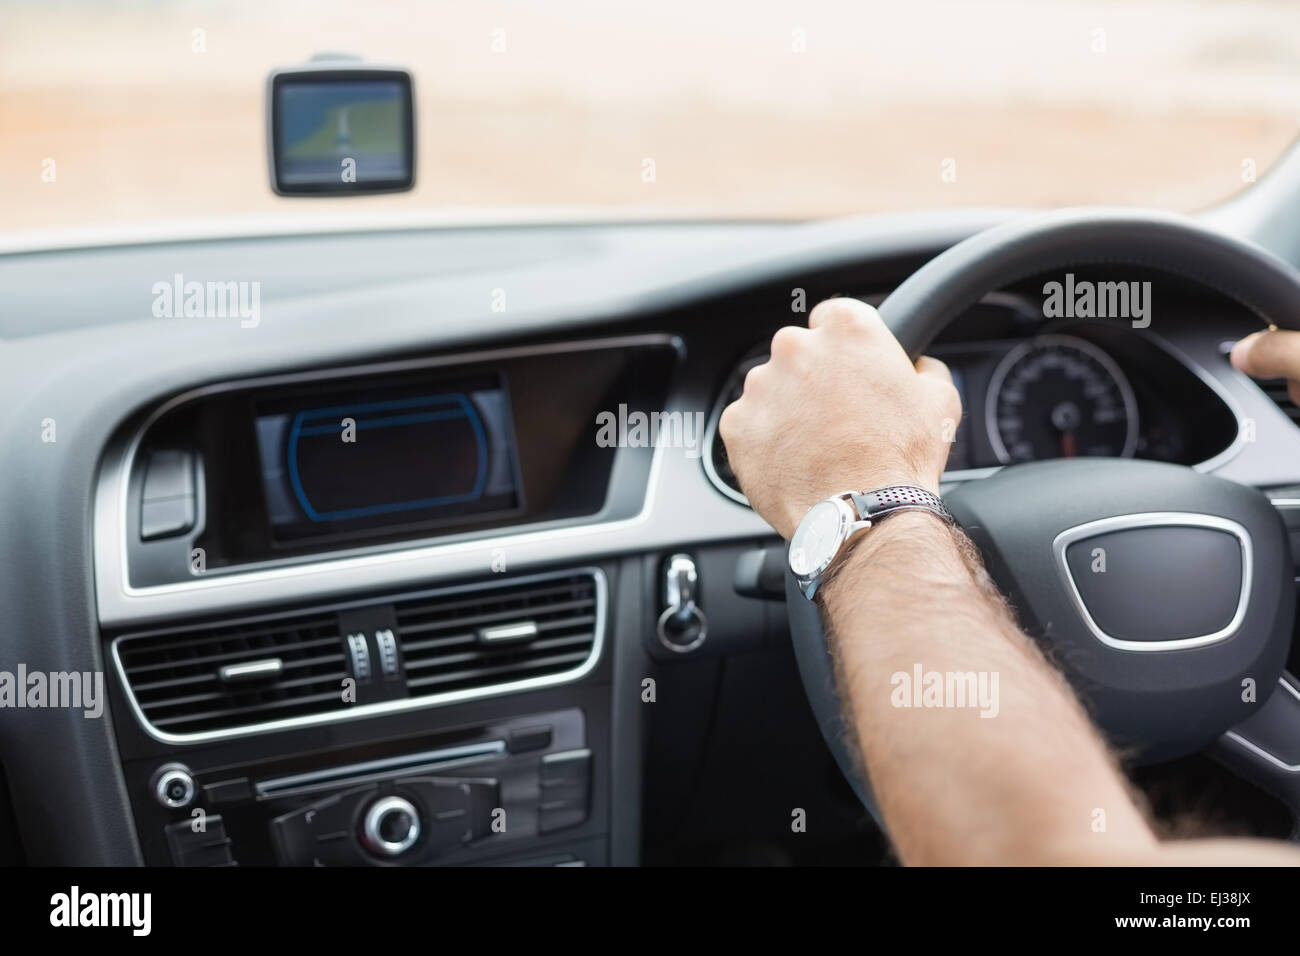 Man driving with satellite navigation system - Stock Image